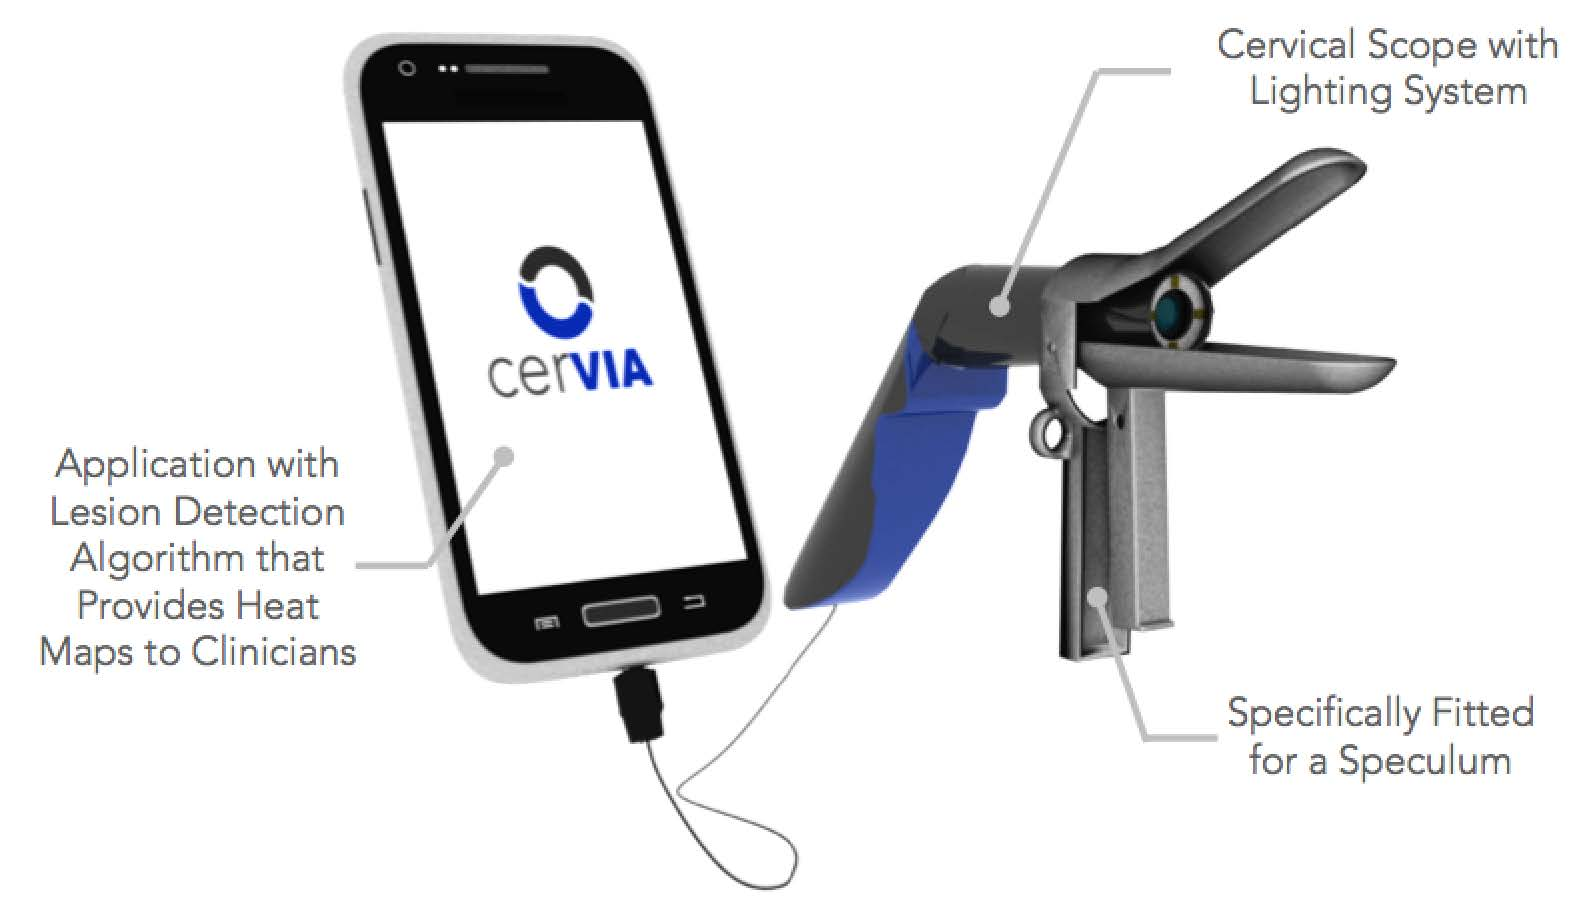 A diagram of the speculum device attached to a smart phone